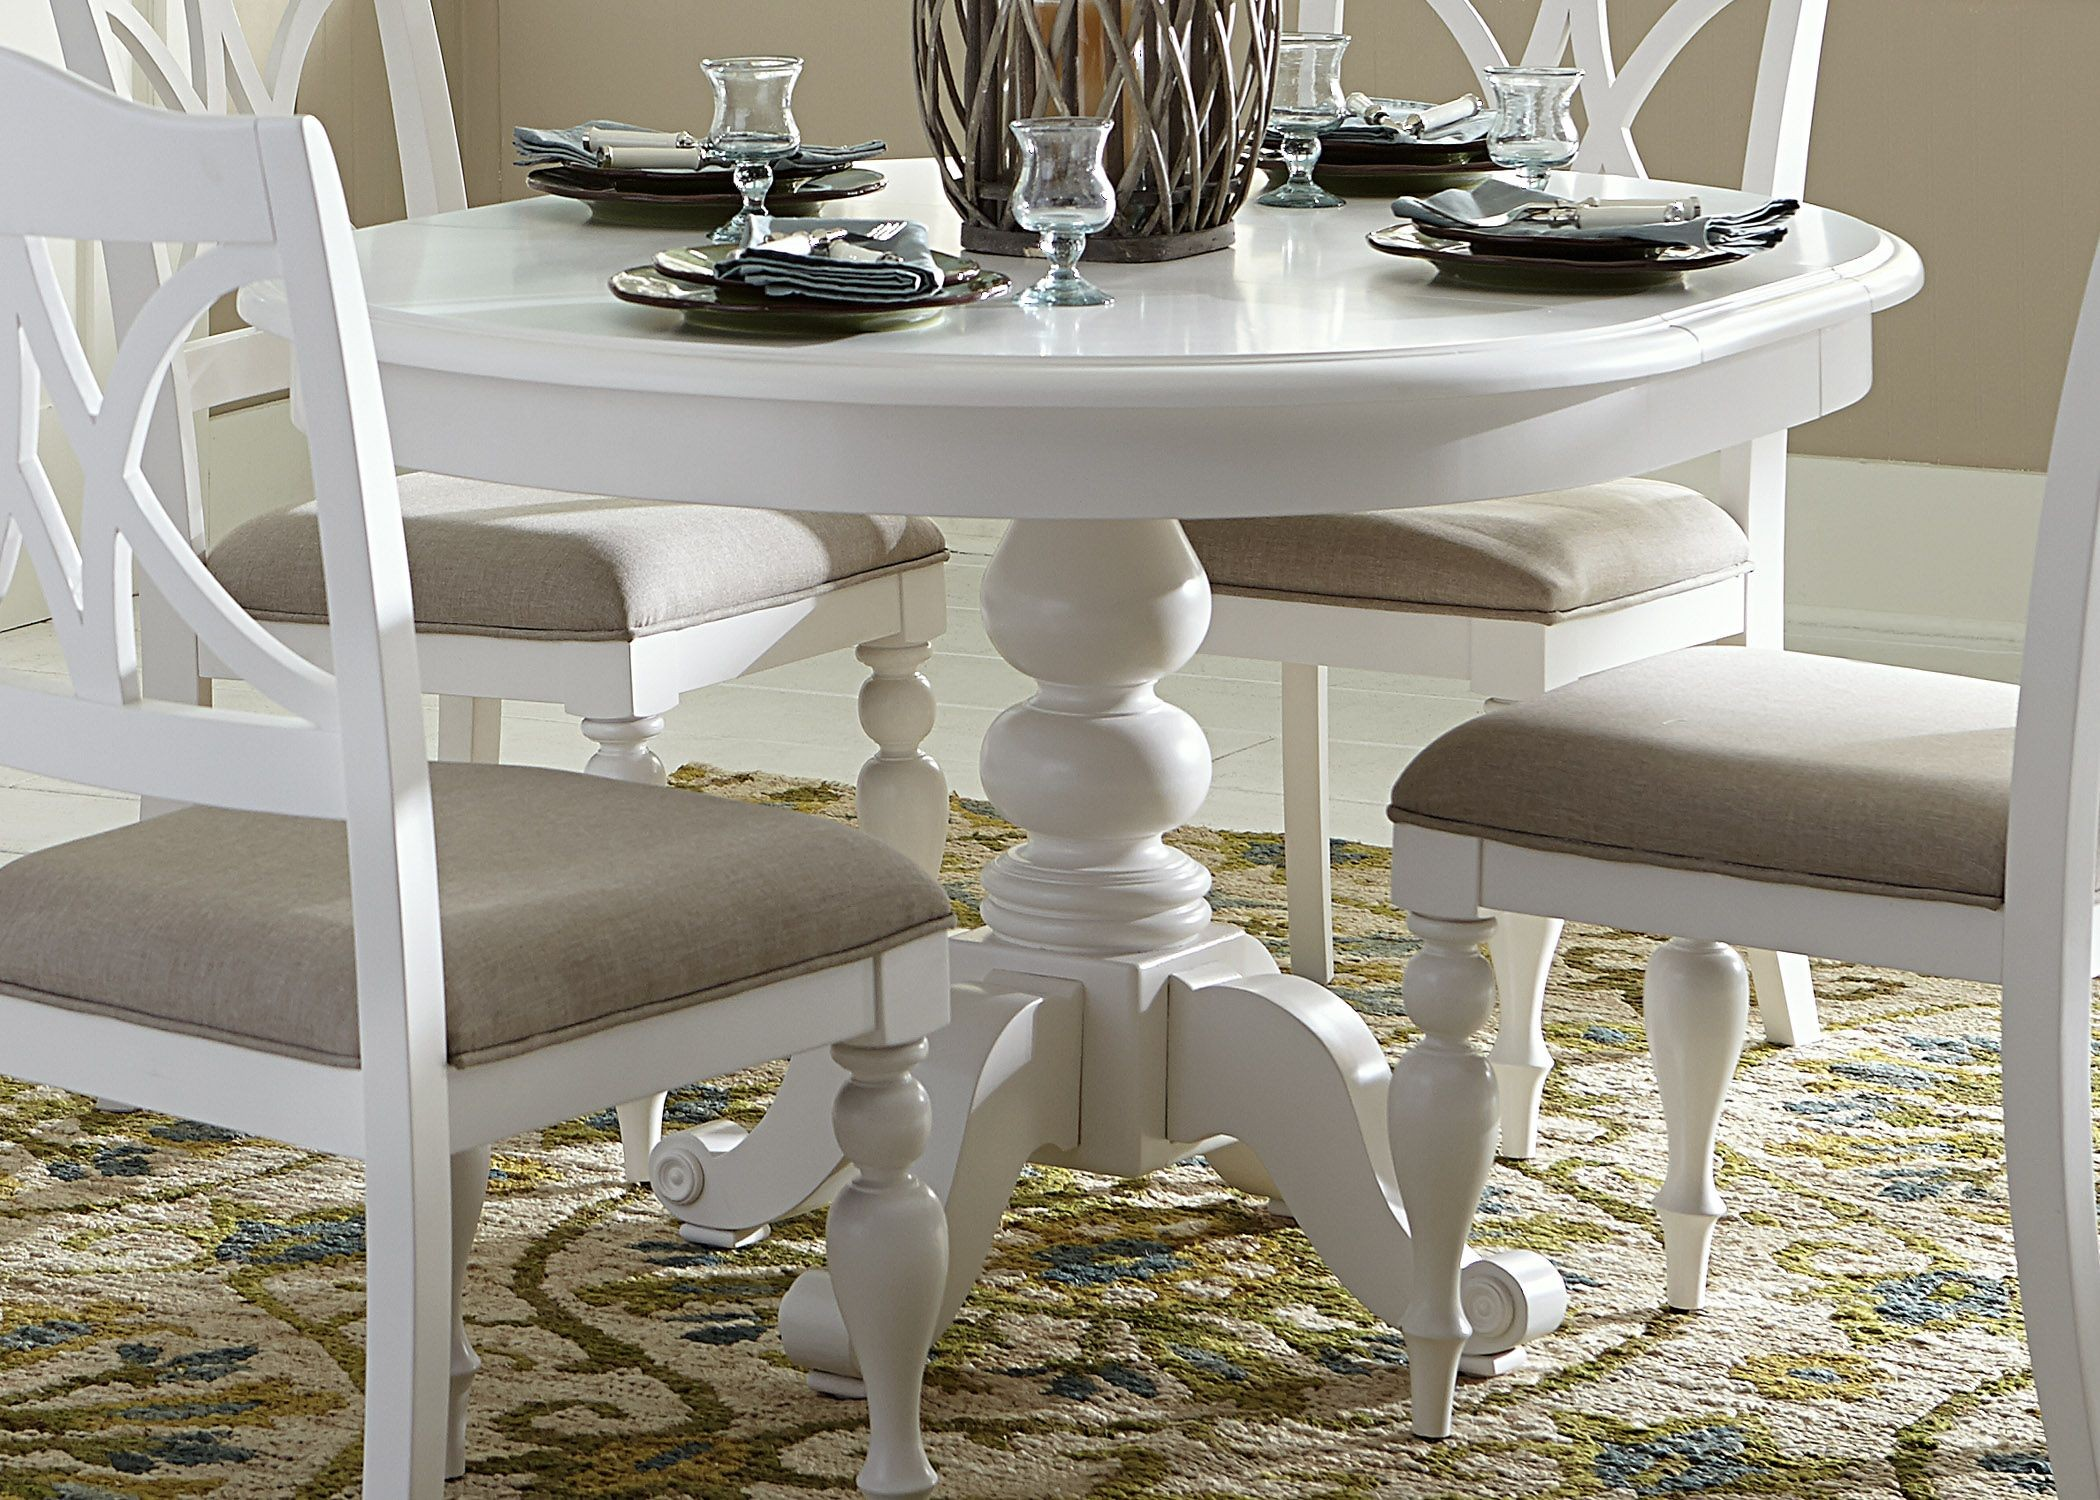 Summer House Oyster White Oyster White Round Pedestal  : 607 t4254 liberty from colemanfurniture.com size 2100 x 1500 jpeg 735kB